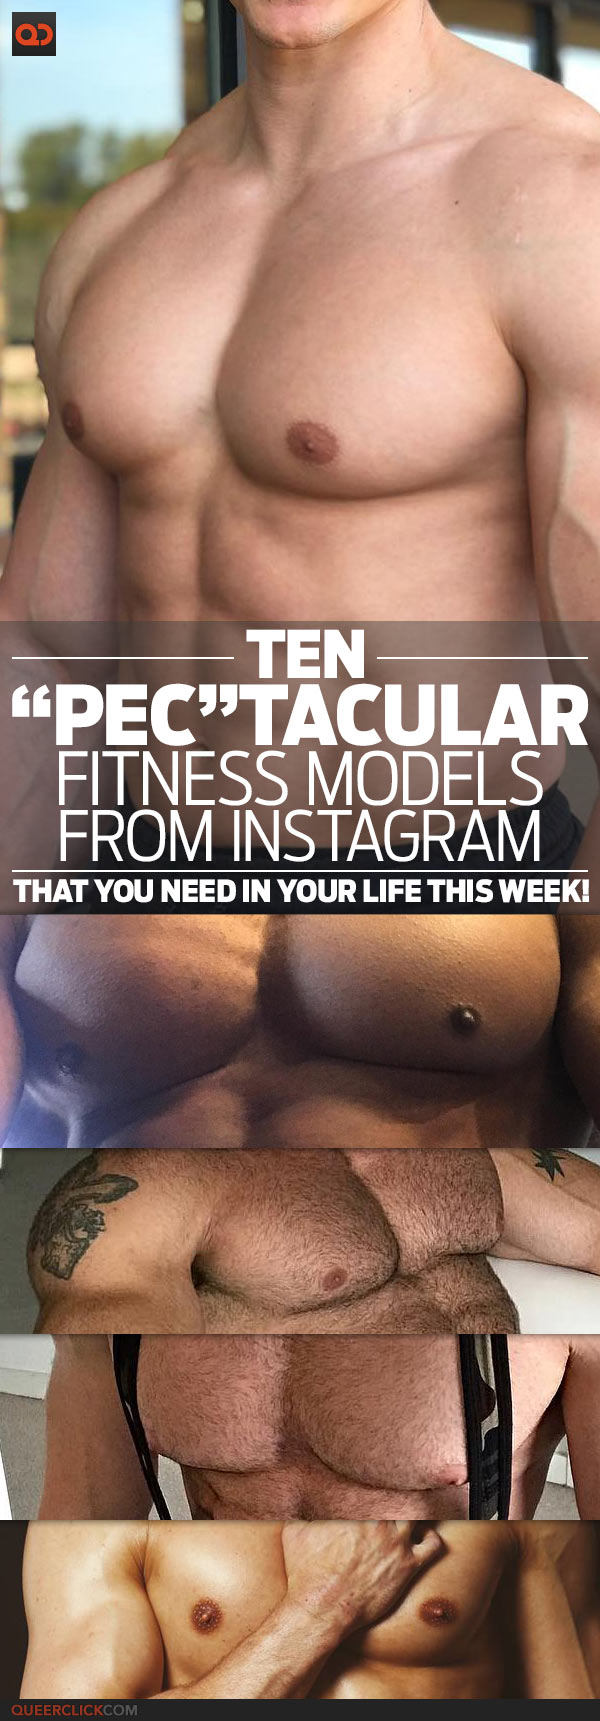 "Ten ""Pec""tacular Fitness Models From Instagram That You Need In Your Life This Week!"